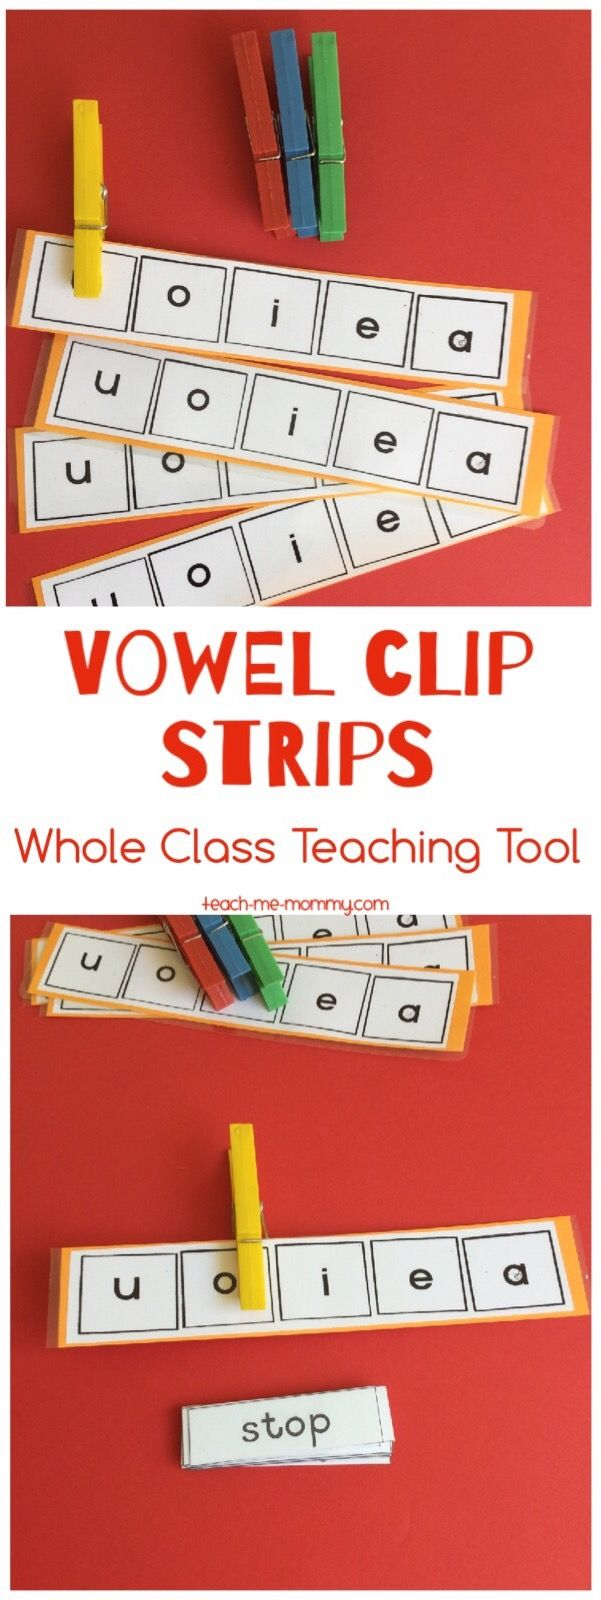 Vowel Clip Strips  A simple teaching tool to use for whole class teaching: vowel clip strips!